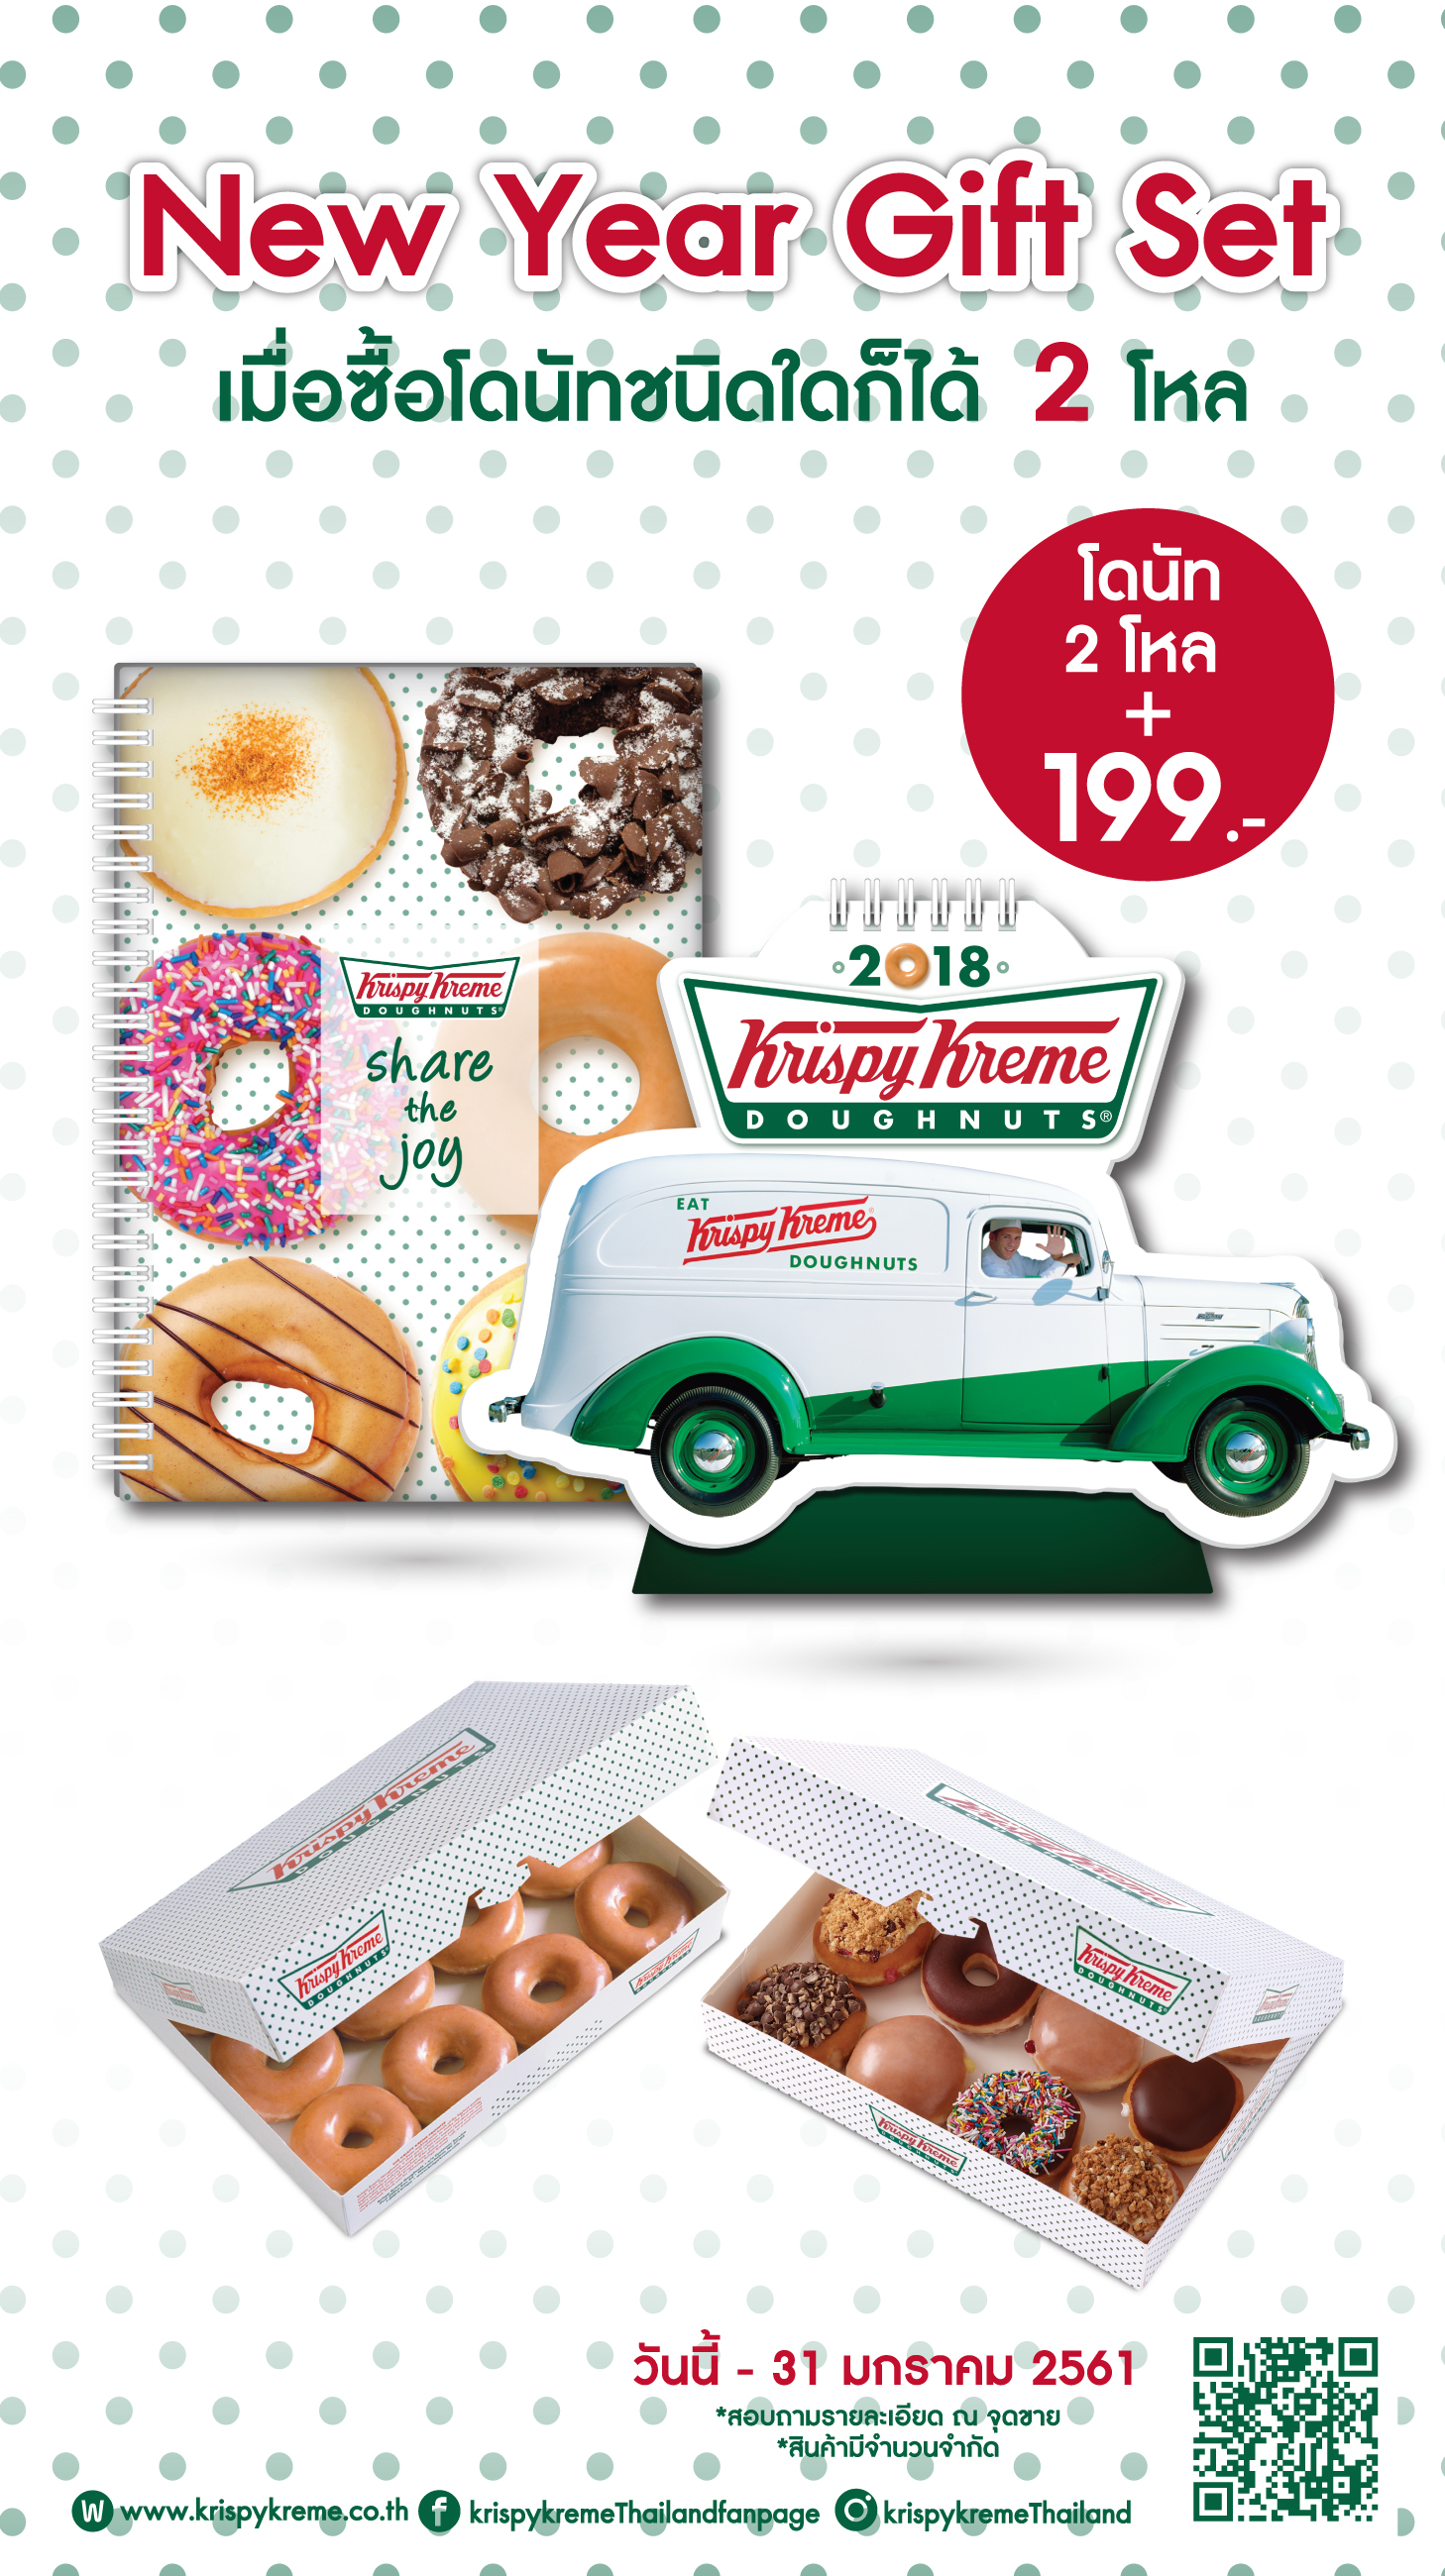 krispykreme_website_newyeargiftset_full